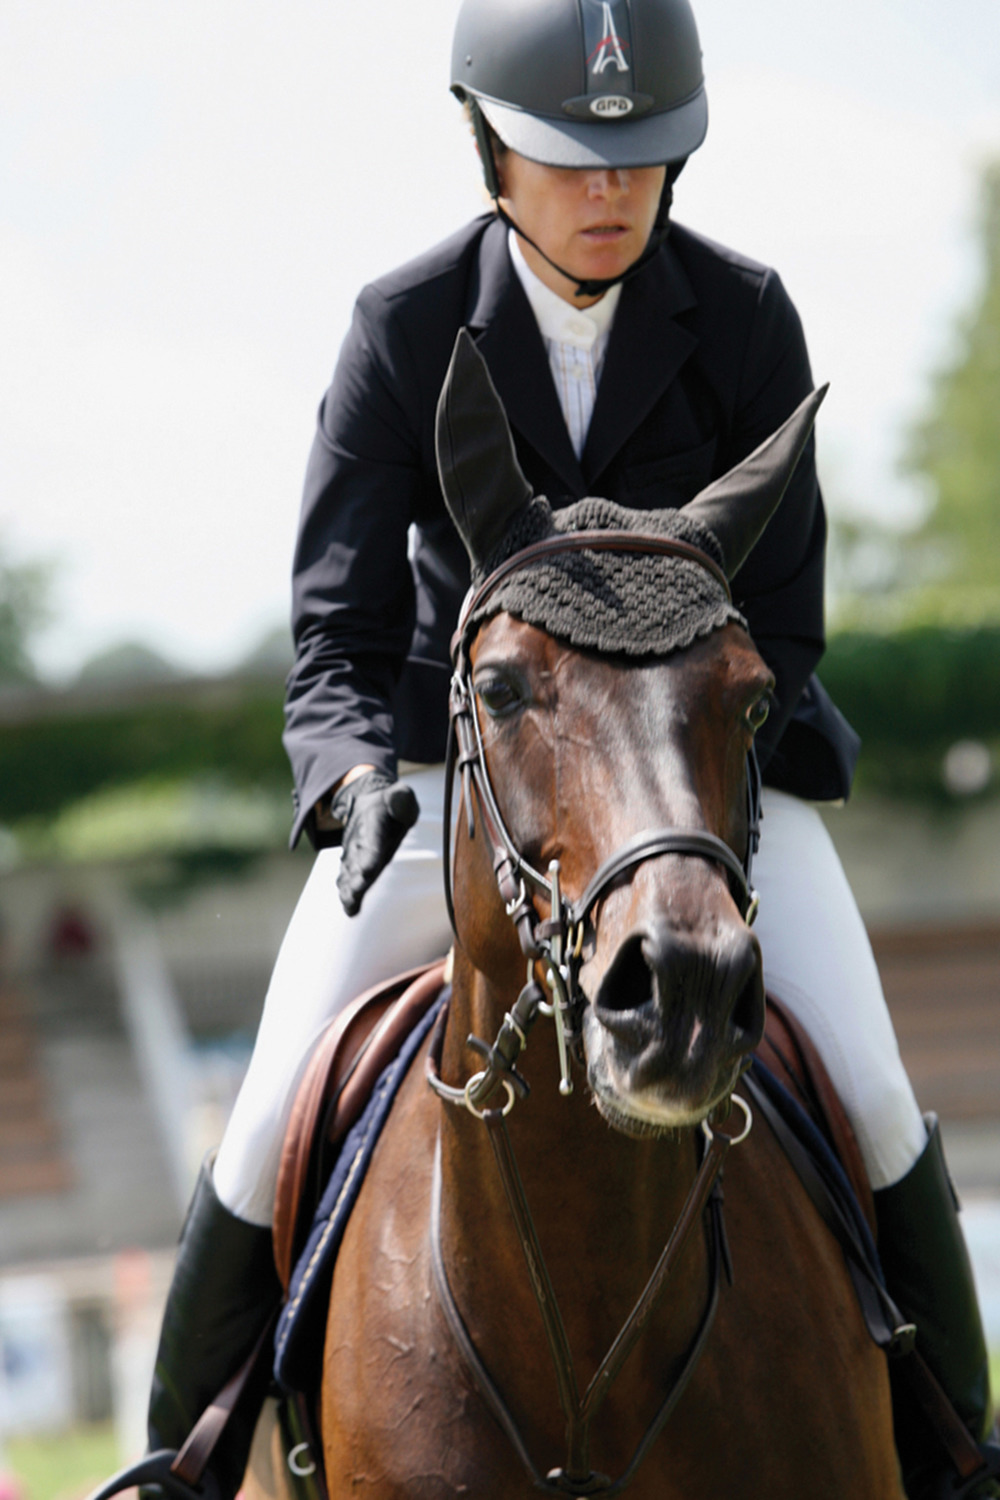 Couperie-Eiffel became the France champion of show jumping in 2005 on the saddle of Jolie B'Neville.